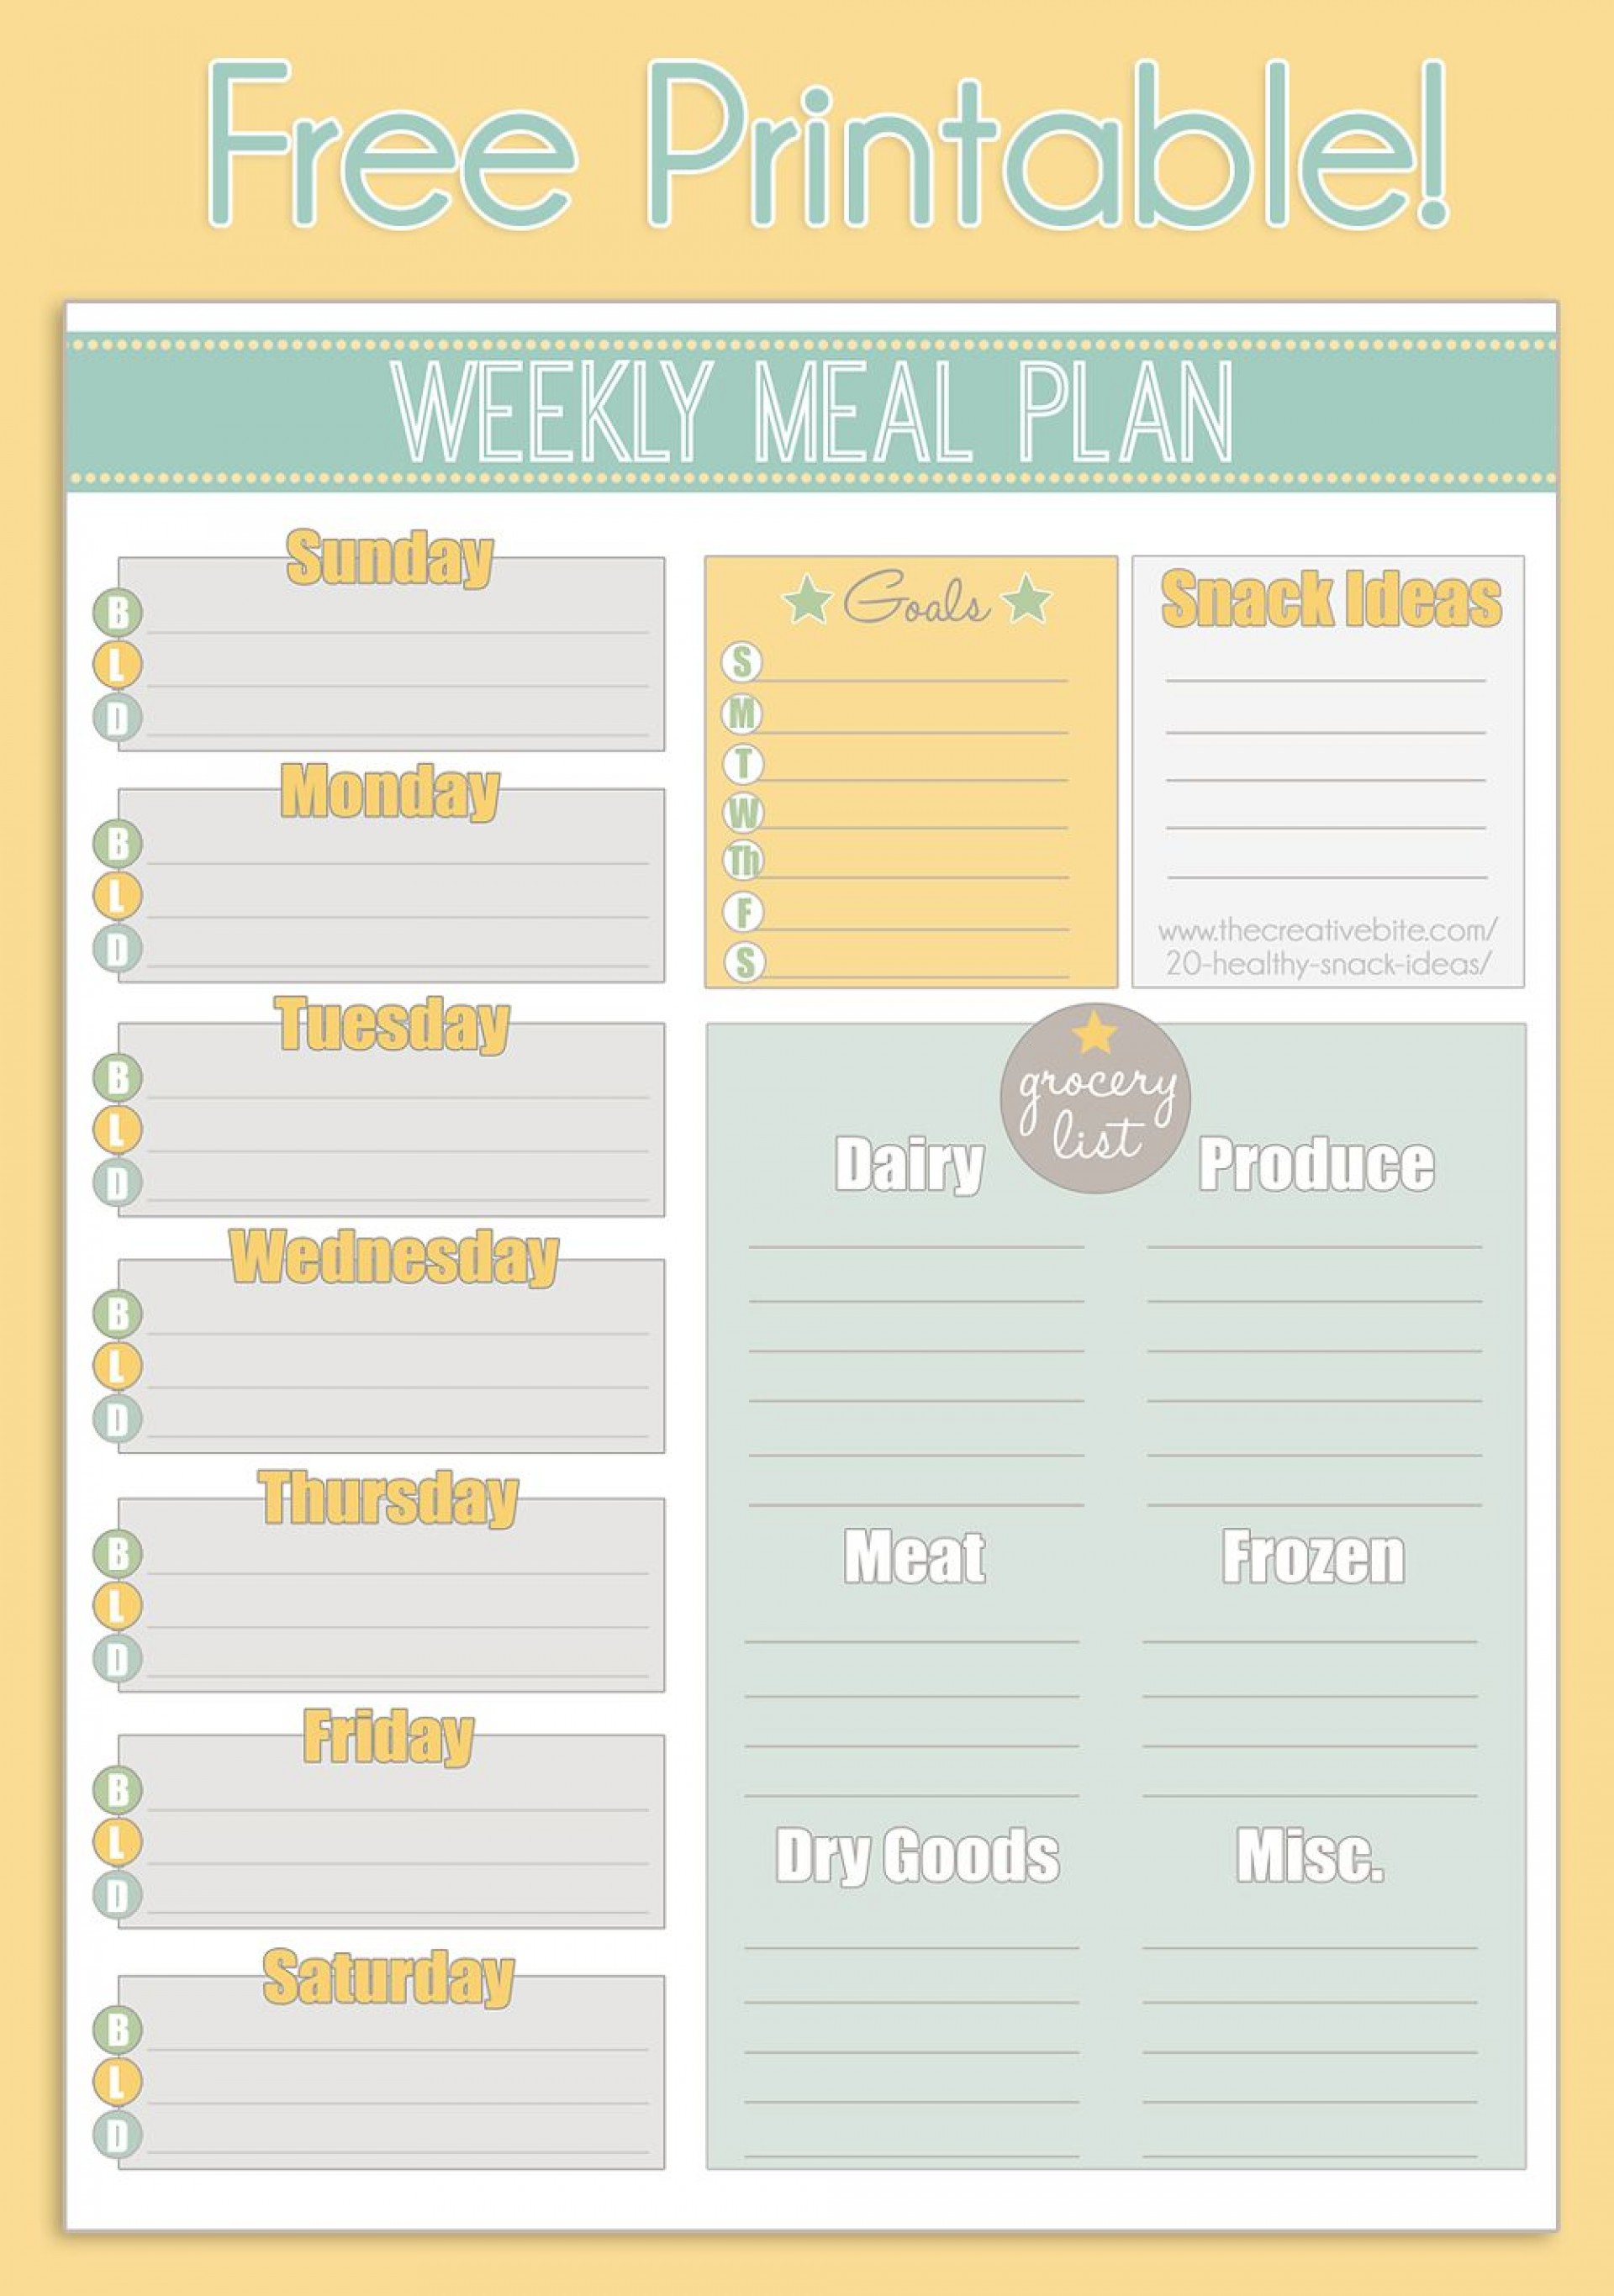 004 Unbelievable Family Meal Planner Template Image  Word Menu1920